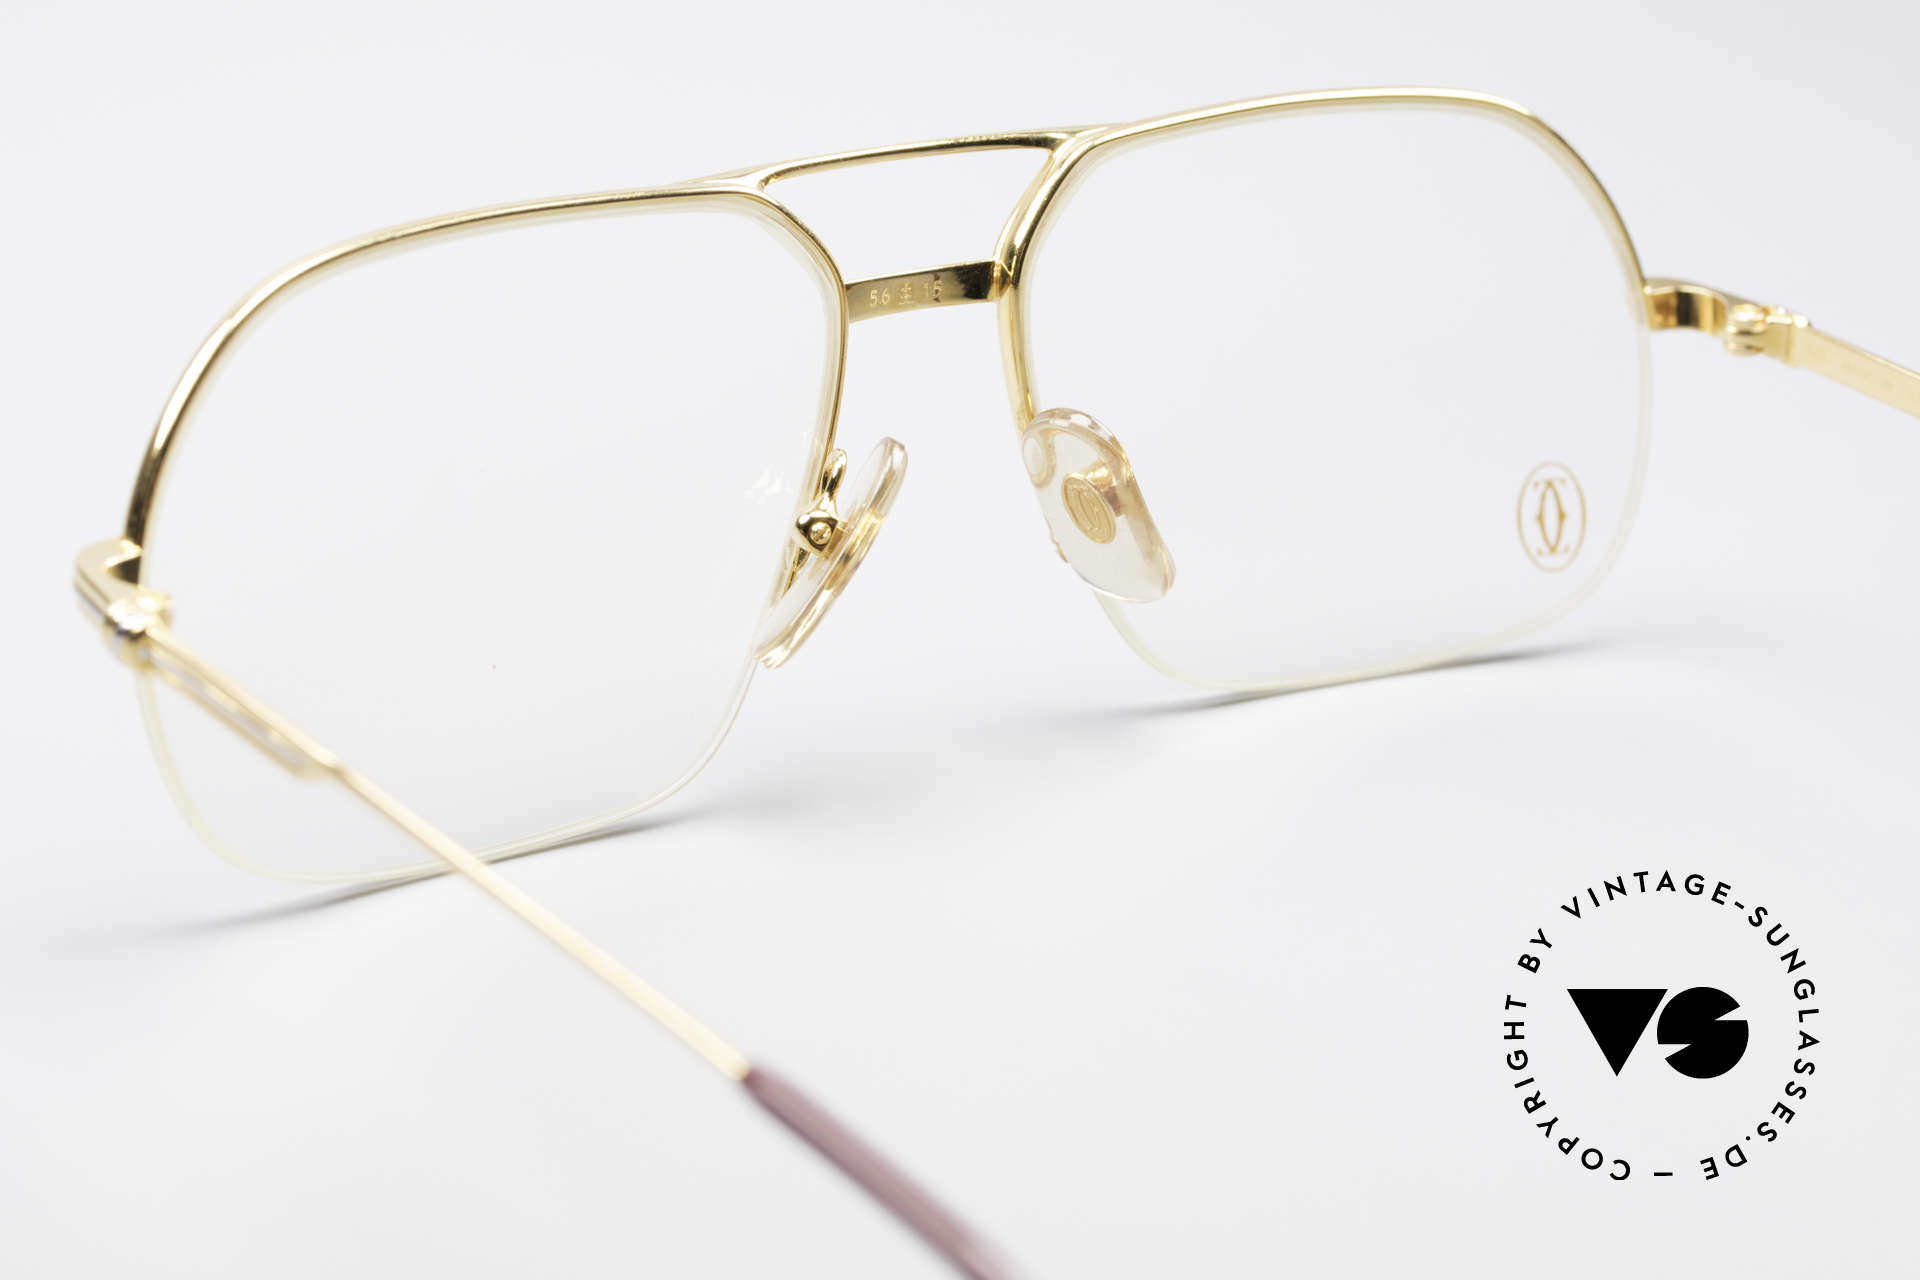 Cartier Orsay Luxury Vintage Eyeglasses, 22ct gold-plated (like all vintage CARTIER frames!), Made for Men